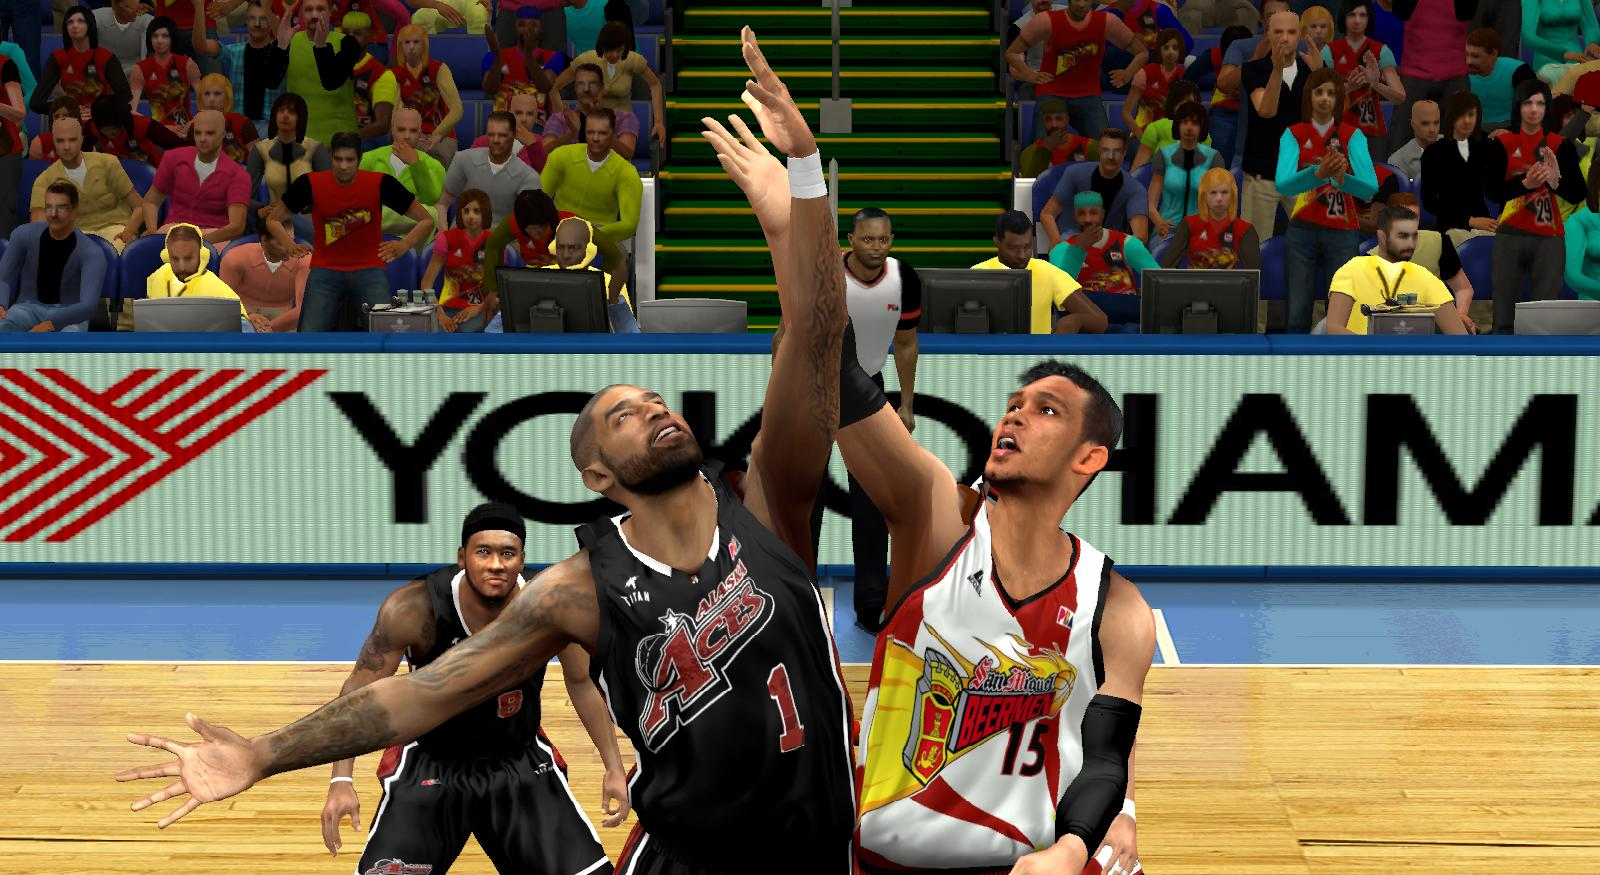 PBA 2K14 Mod Version 8 2 Now Available - NBA2K ORG